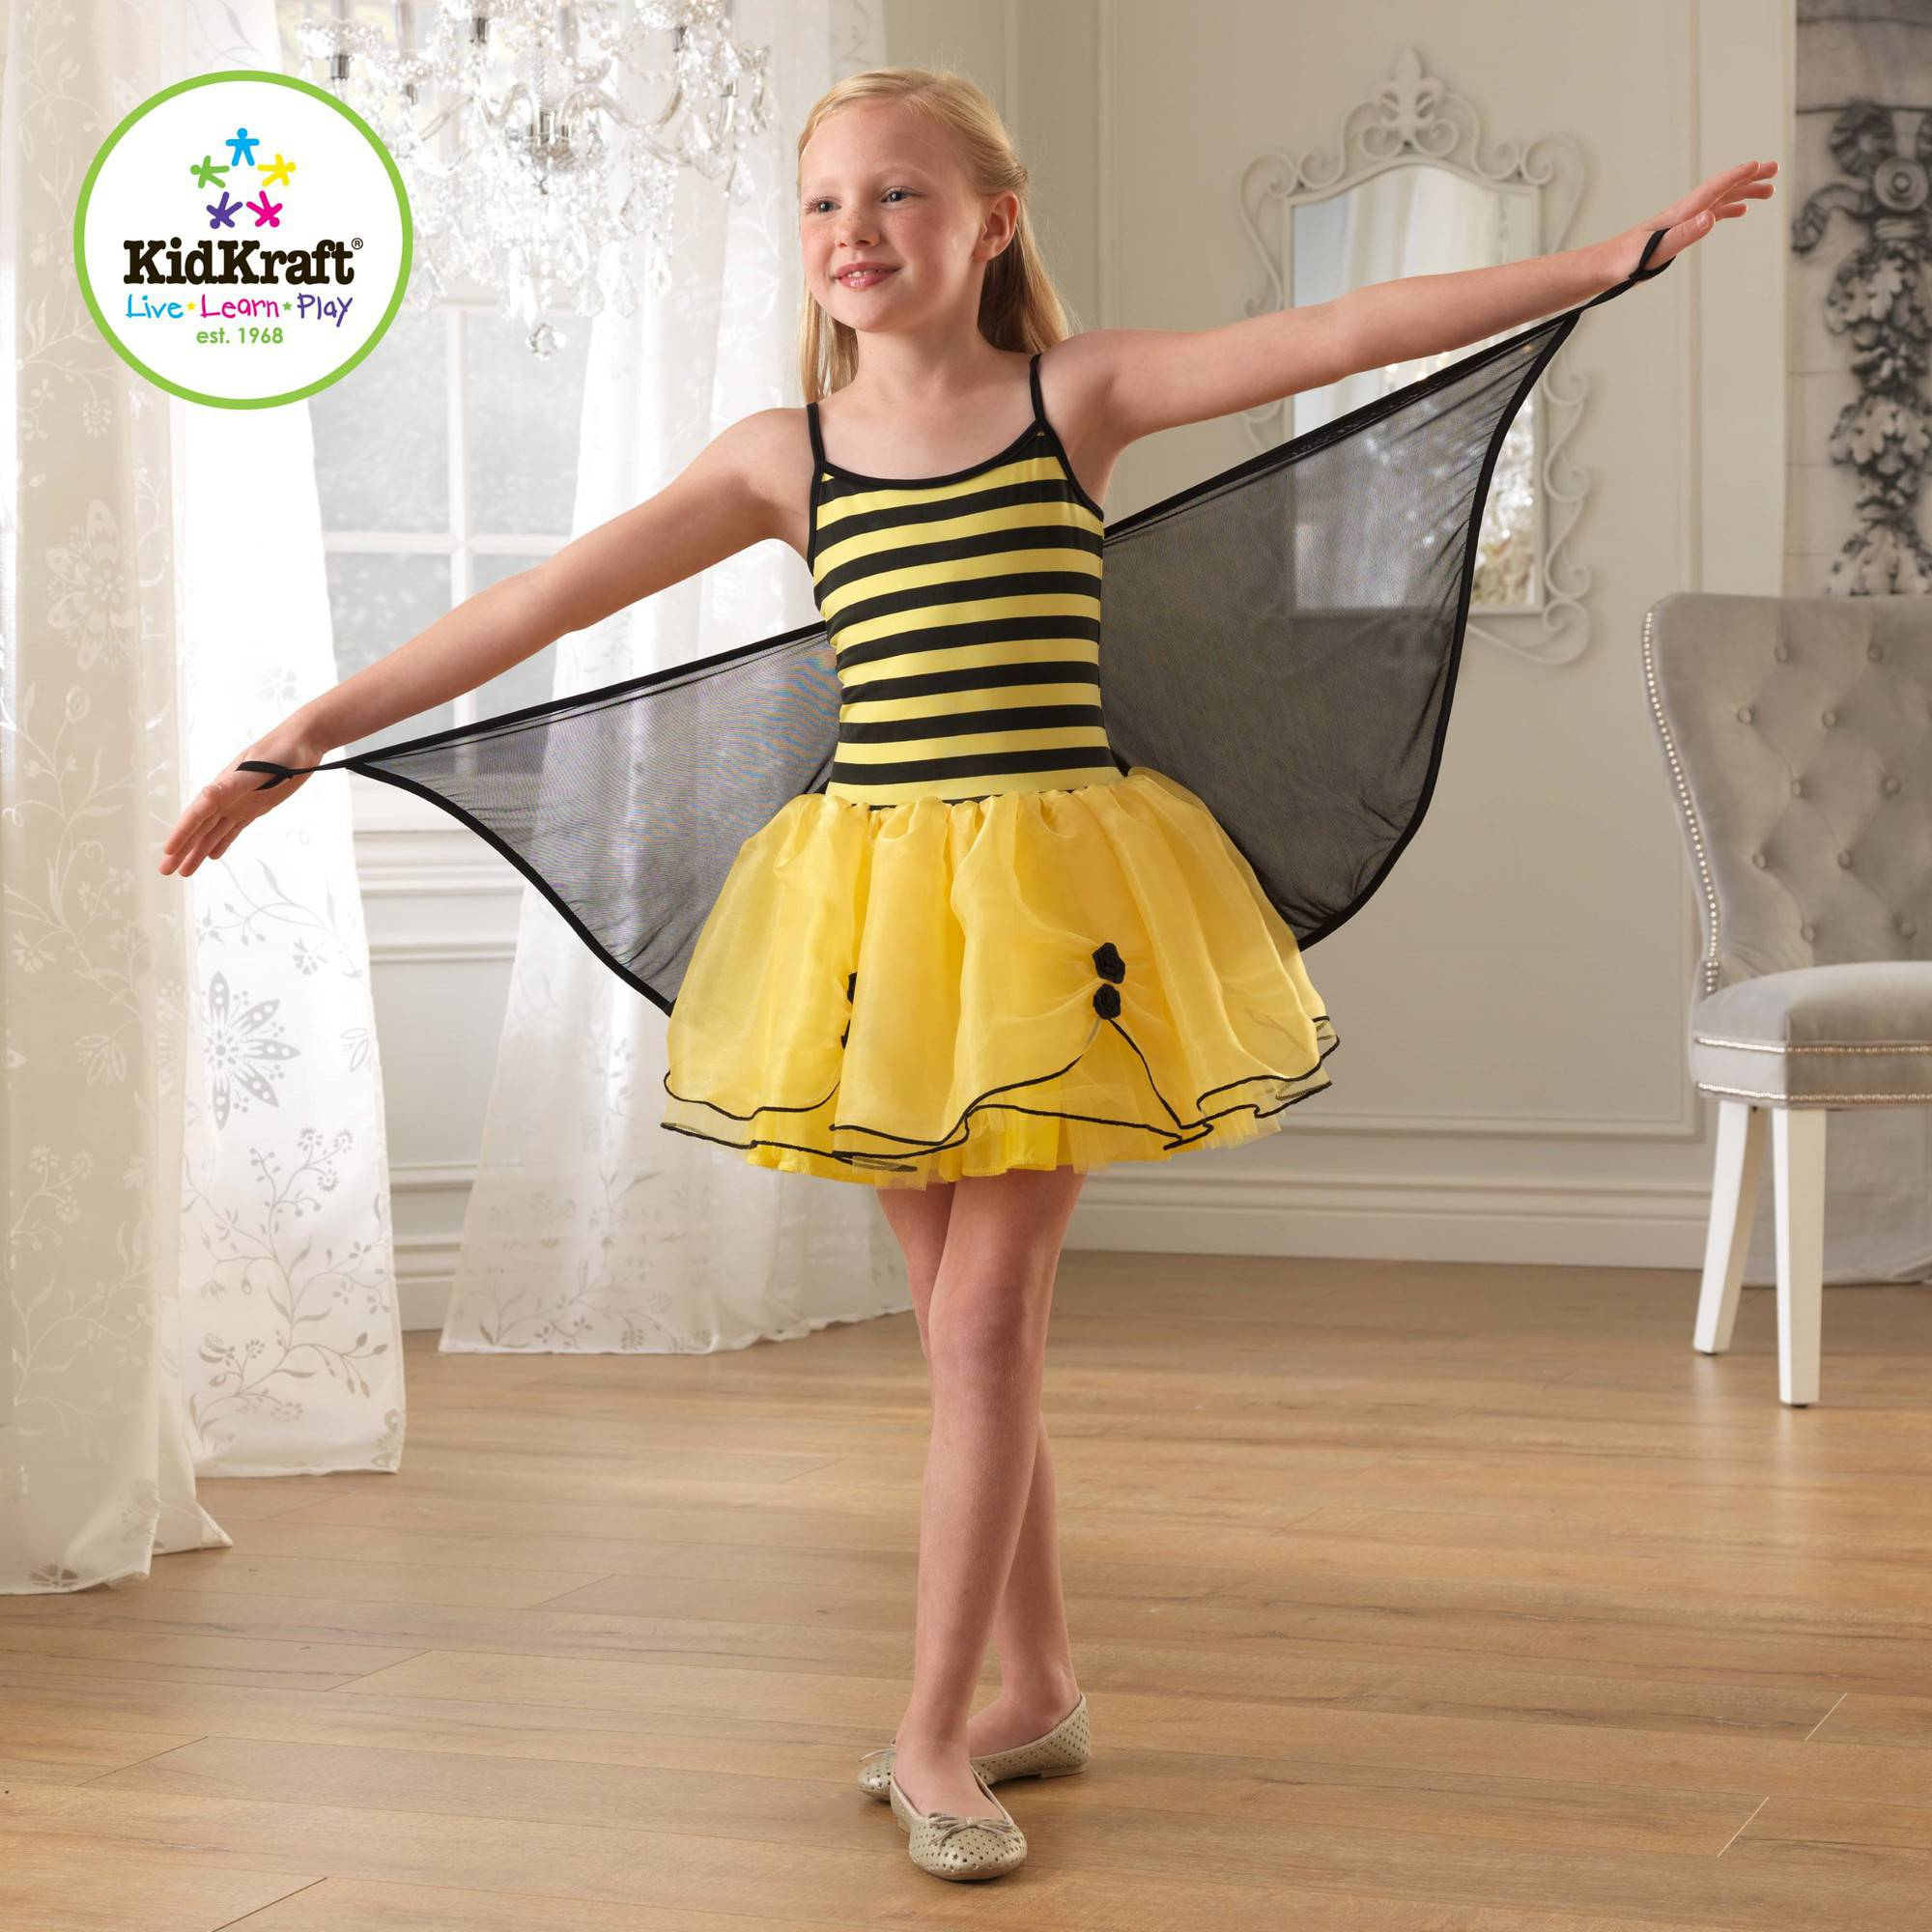 KidKraft Winged Bumblebee Dress Up Costume